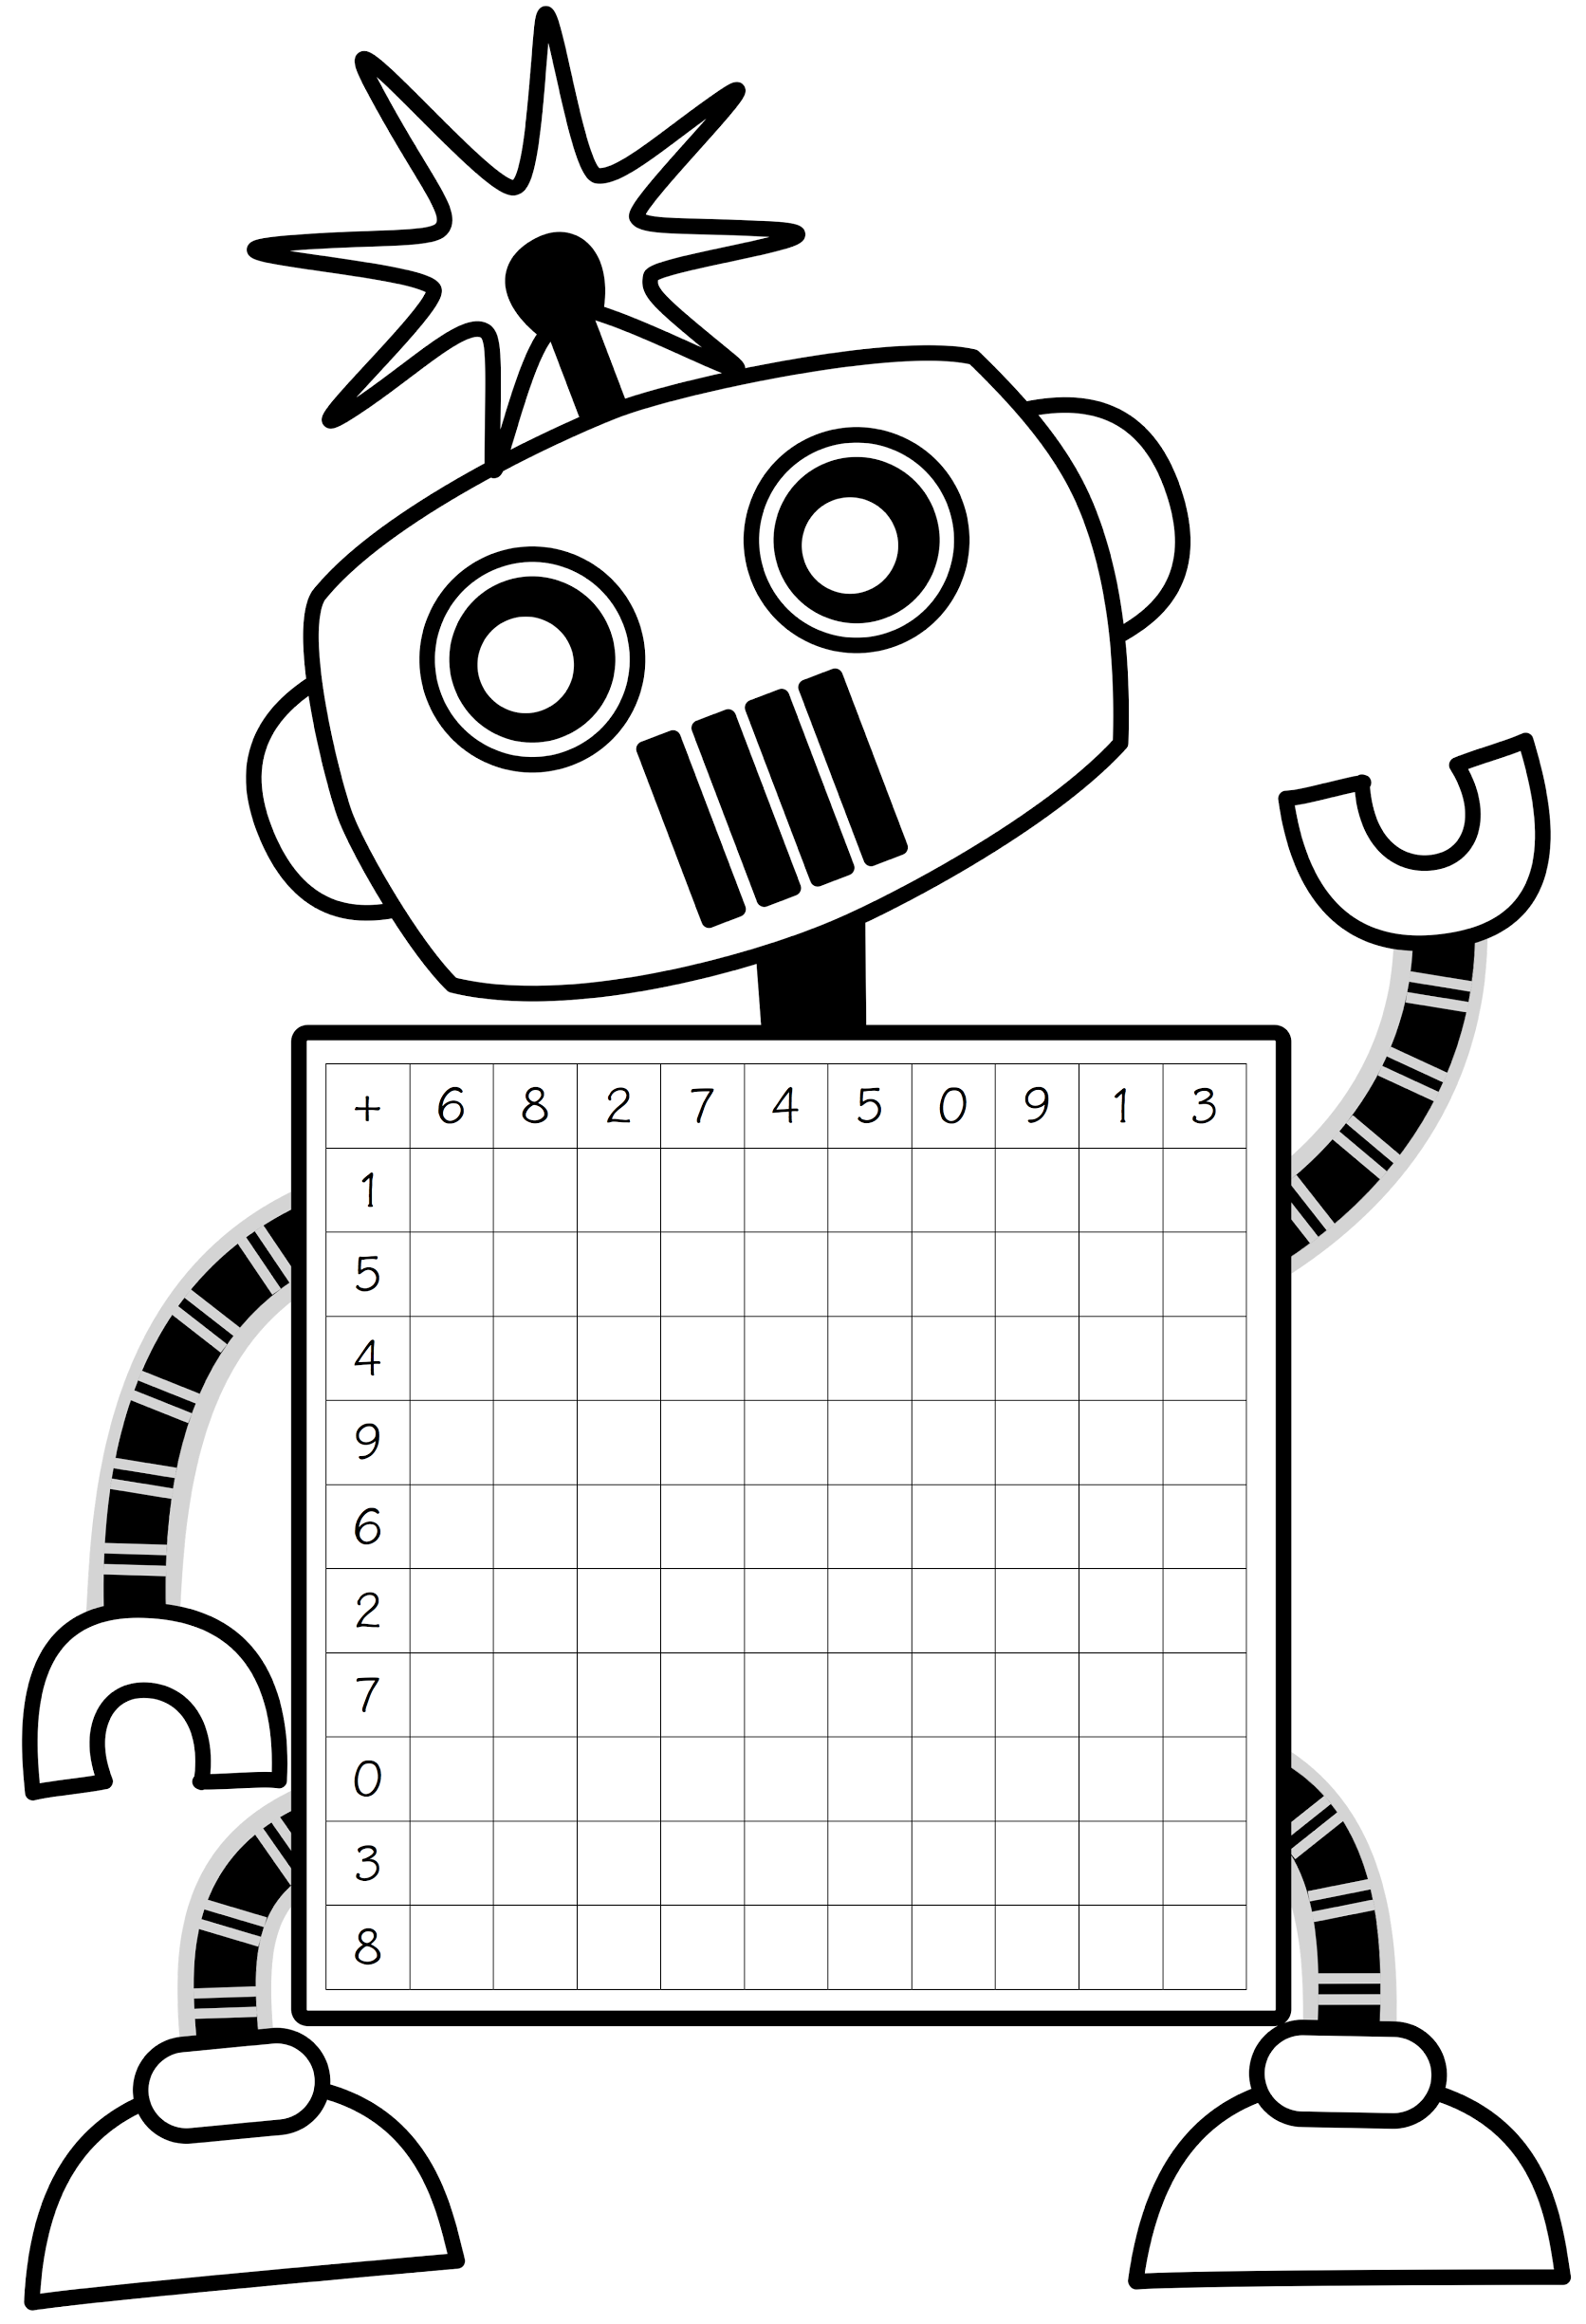 Displaying Robot Addition Grid